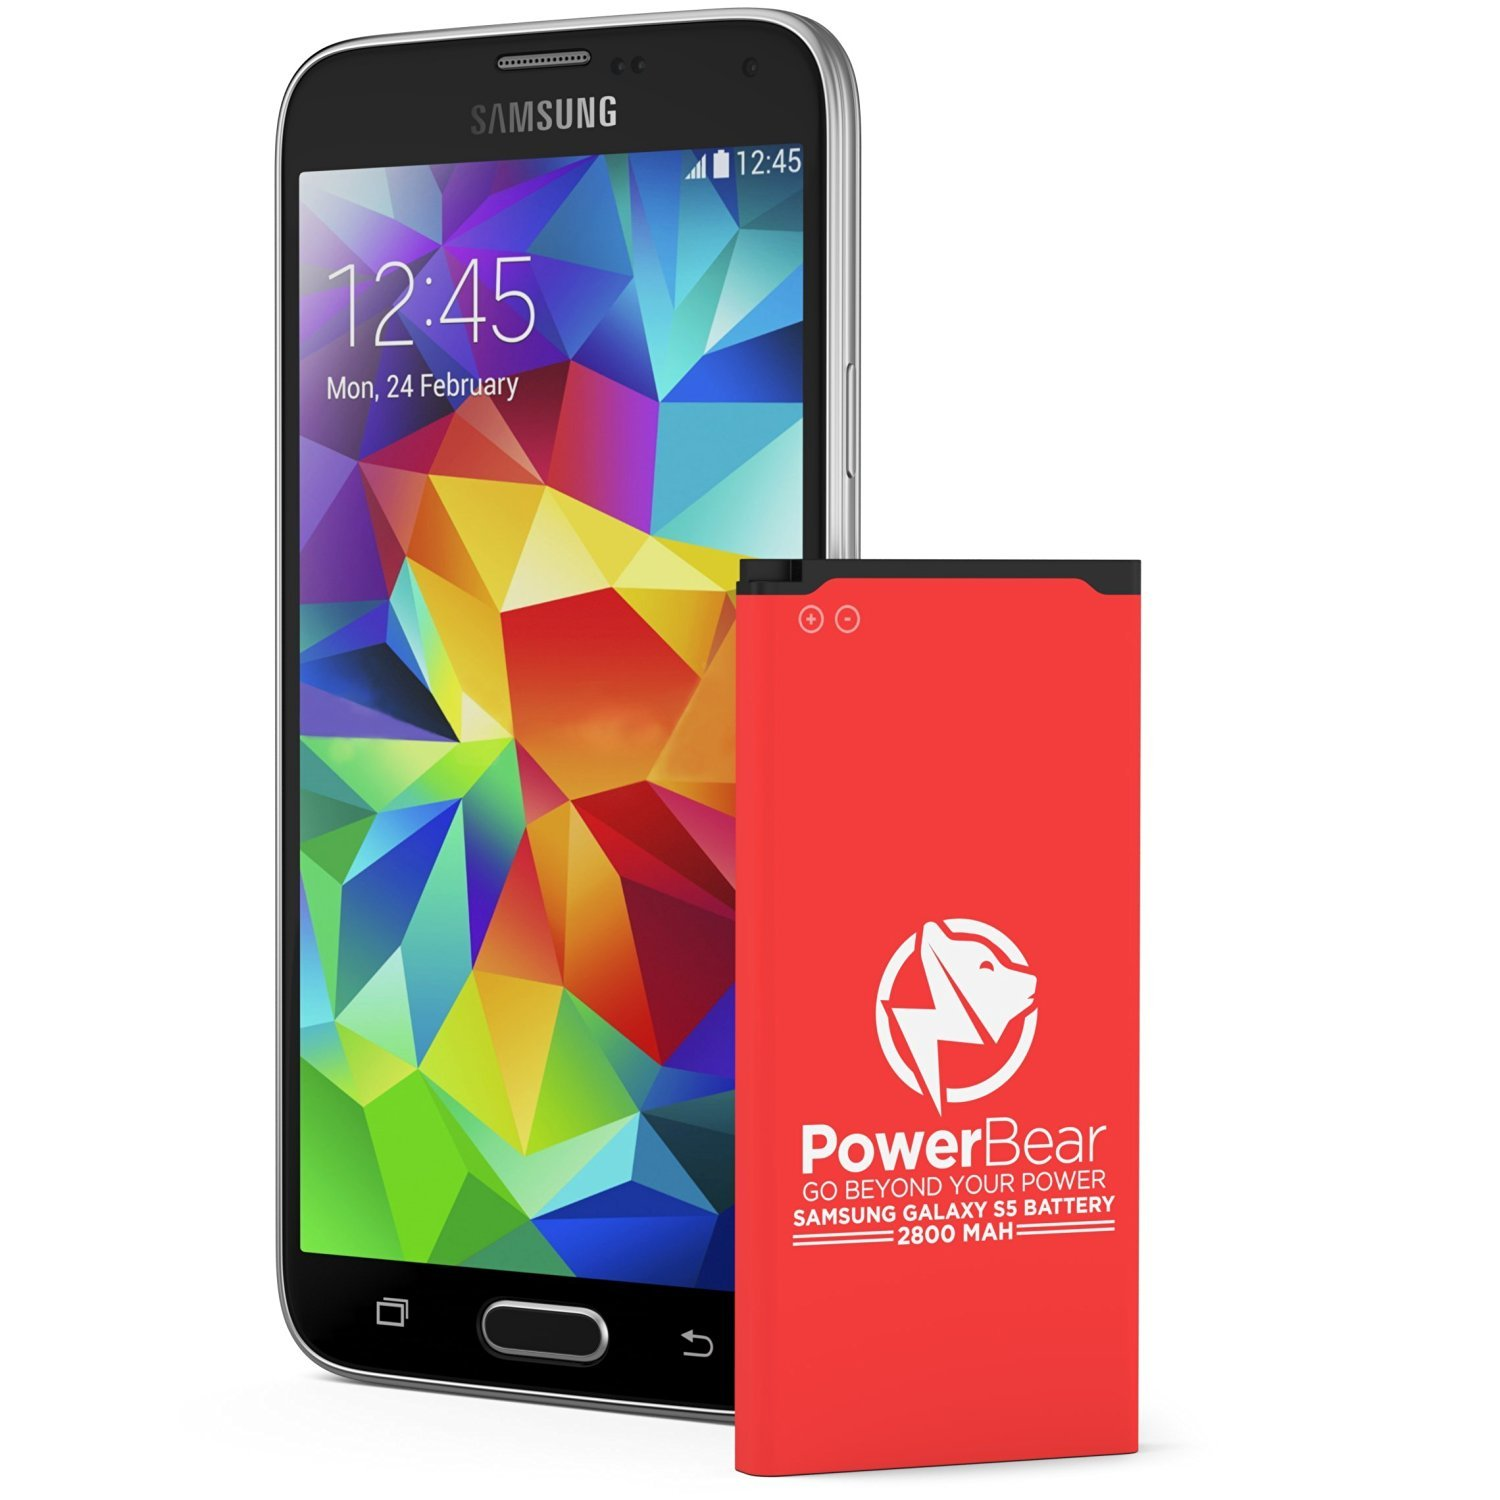 PowerBear Samsung Galaxy S5 Battery (2,800 mAh) UPGRADED Spare Battery for the Galaxy S5 [I9600, G900F, G900V (Verizon), G900T (T-Mobile), G900A (AT&T)] Replacement Battery [24 Month Warranty]